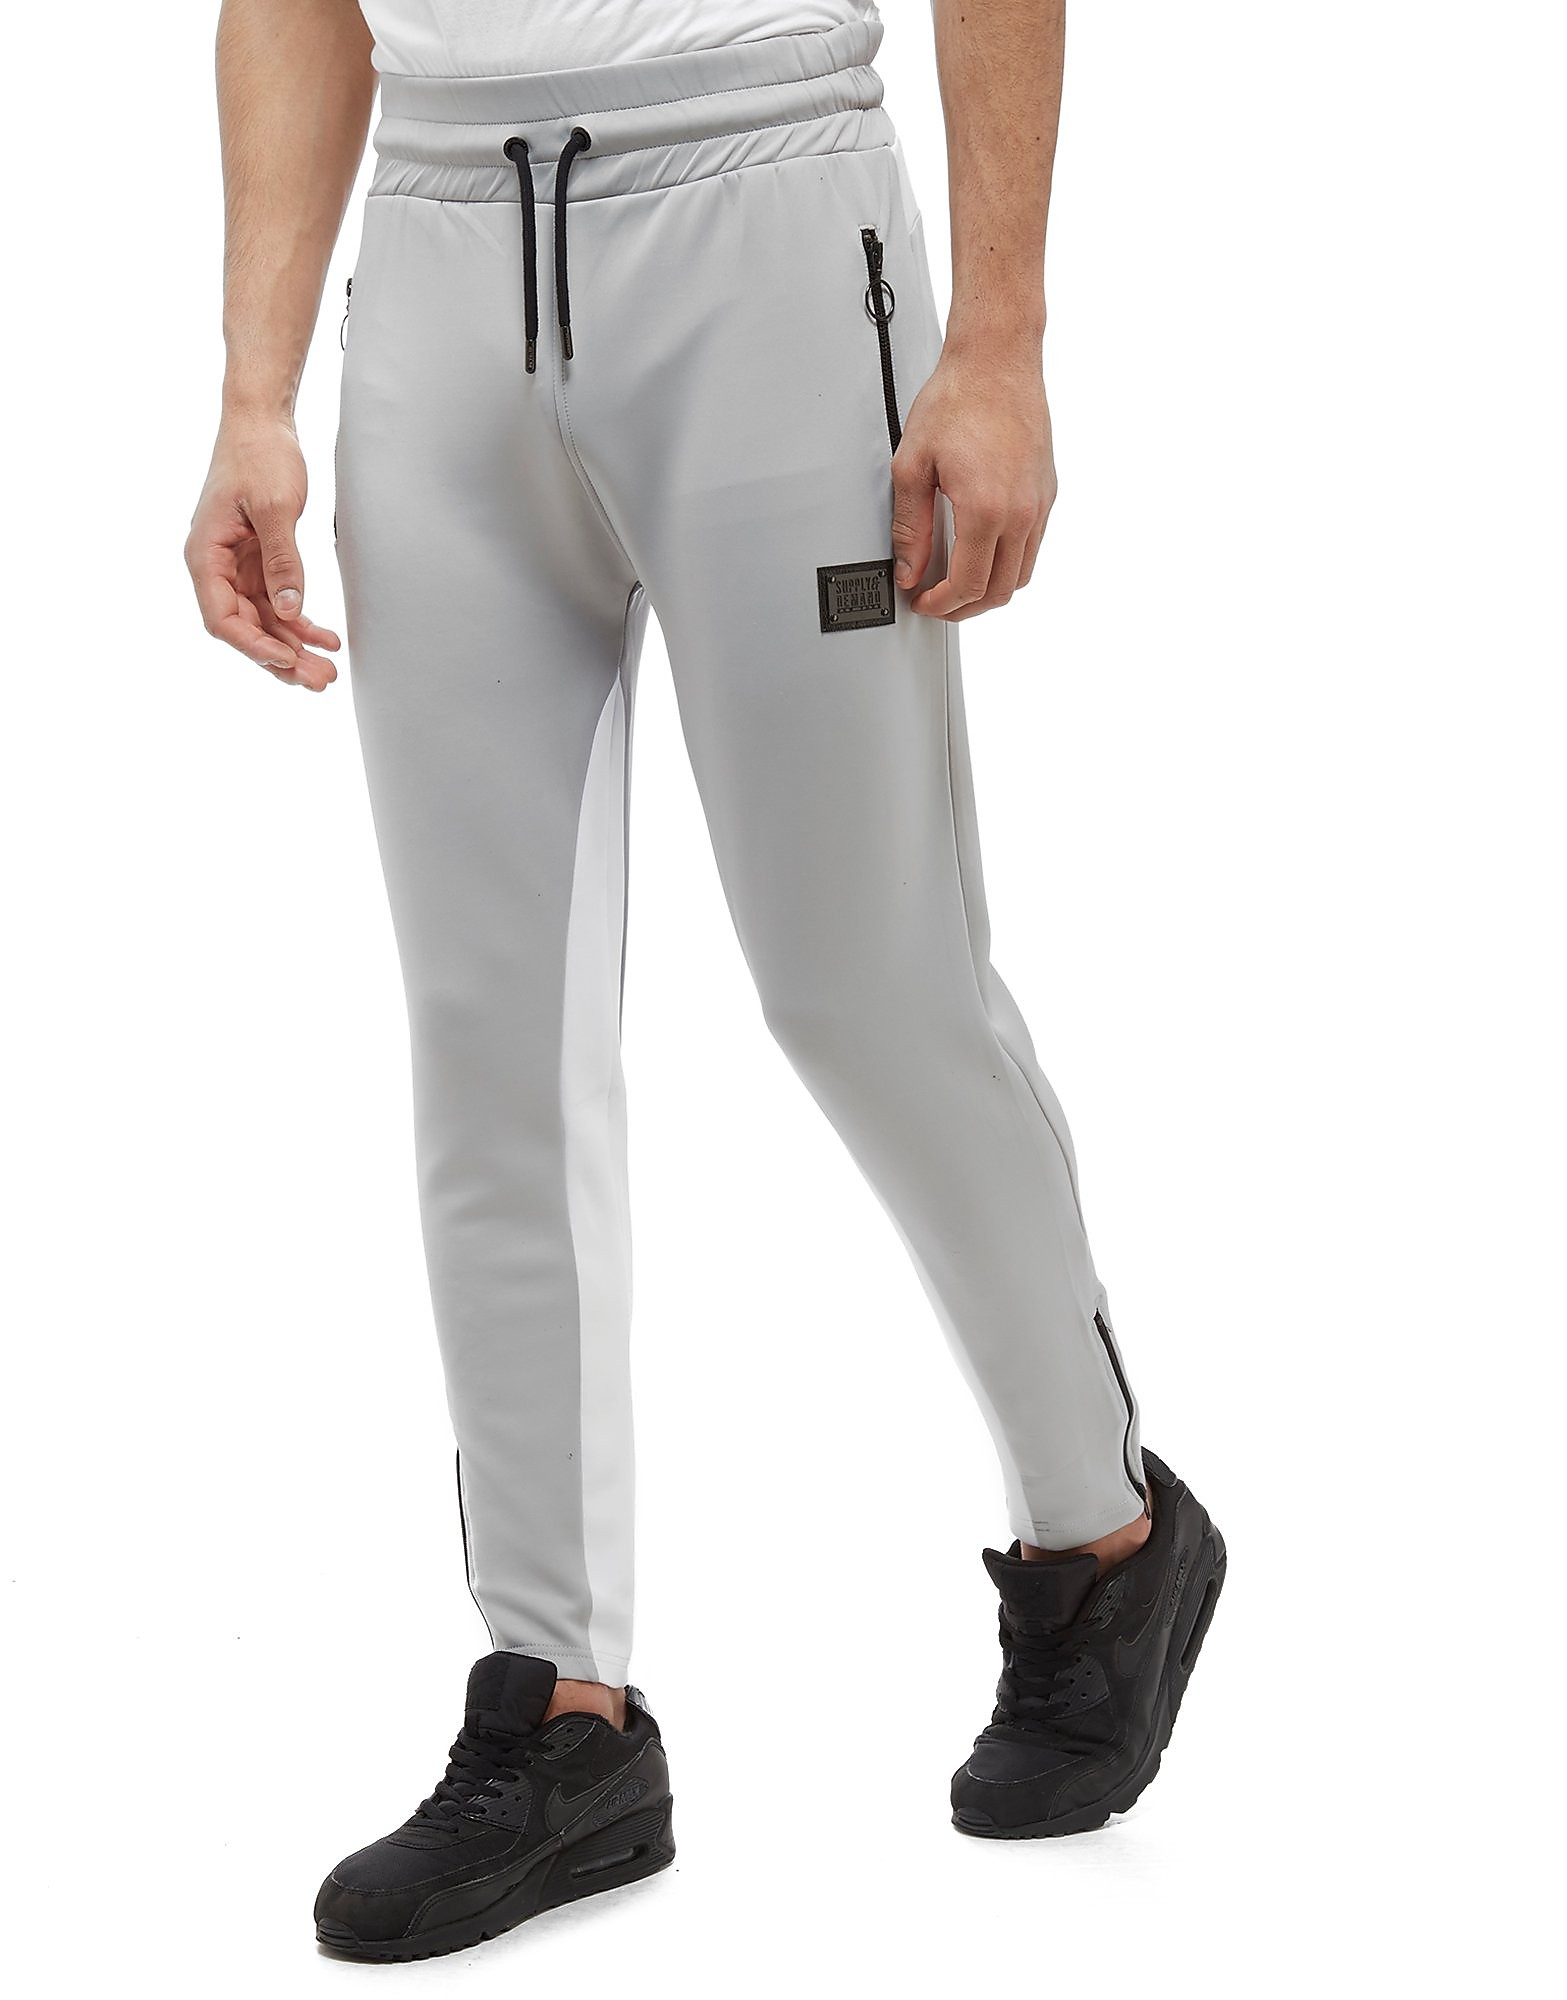 Supply & Demand Alaska Joggers - Only at JD, Grey